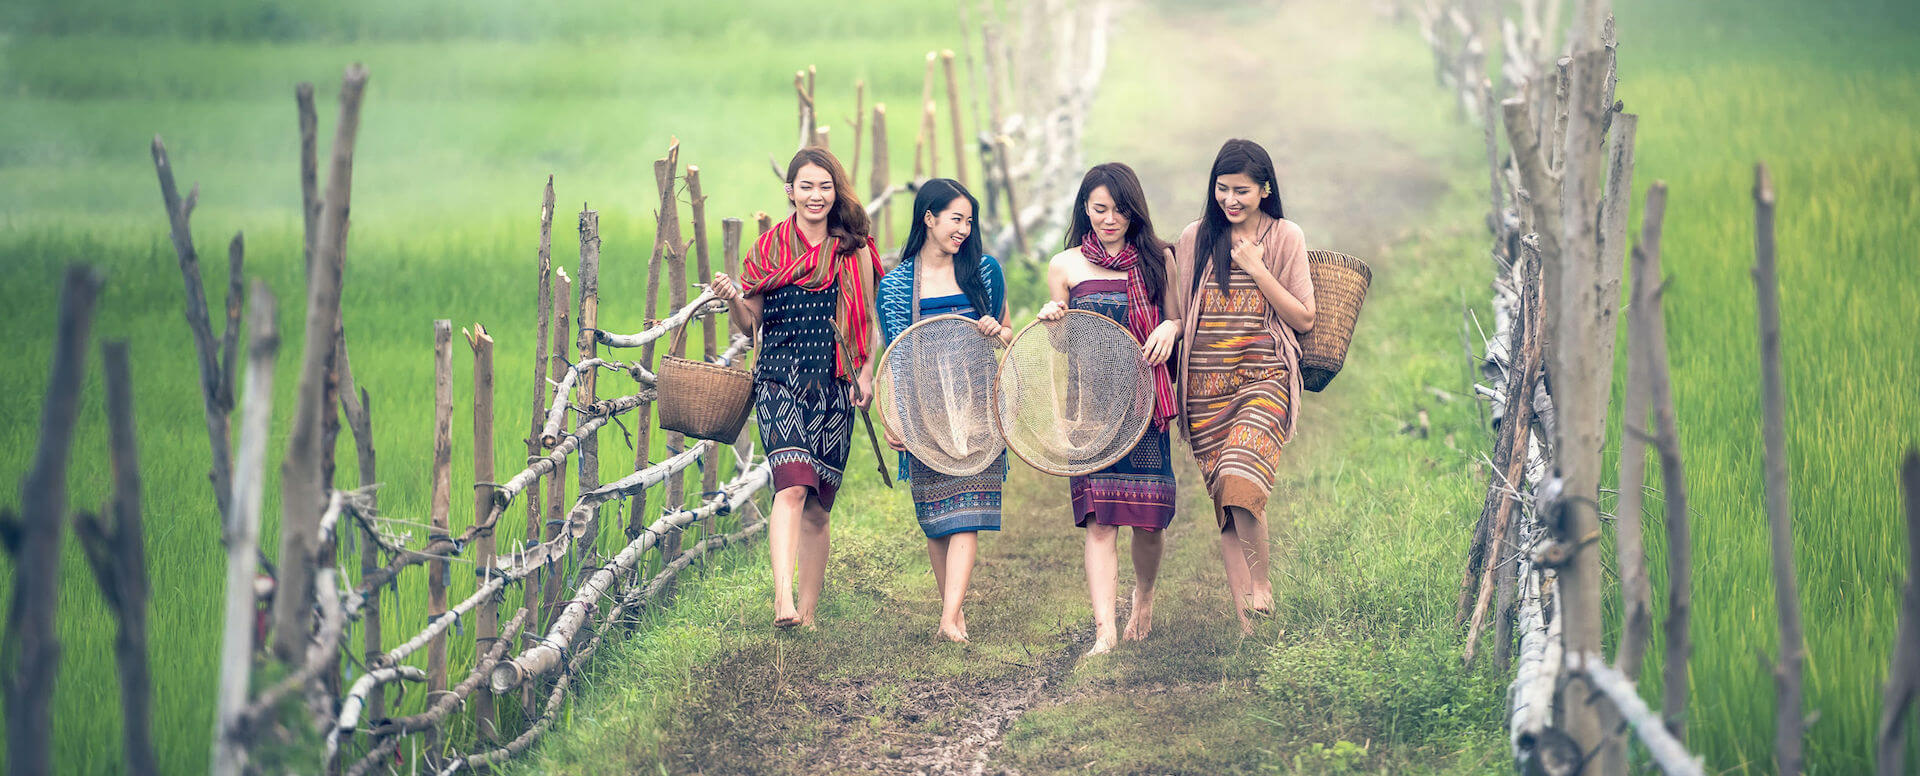 Tips to know before visiting Indonesia - Indonesia